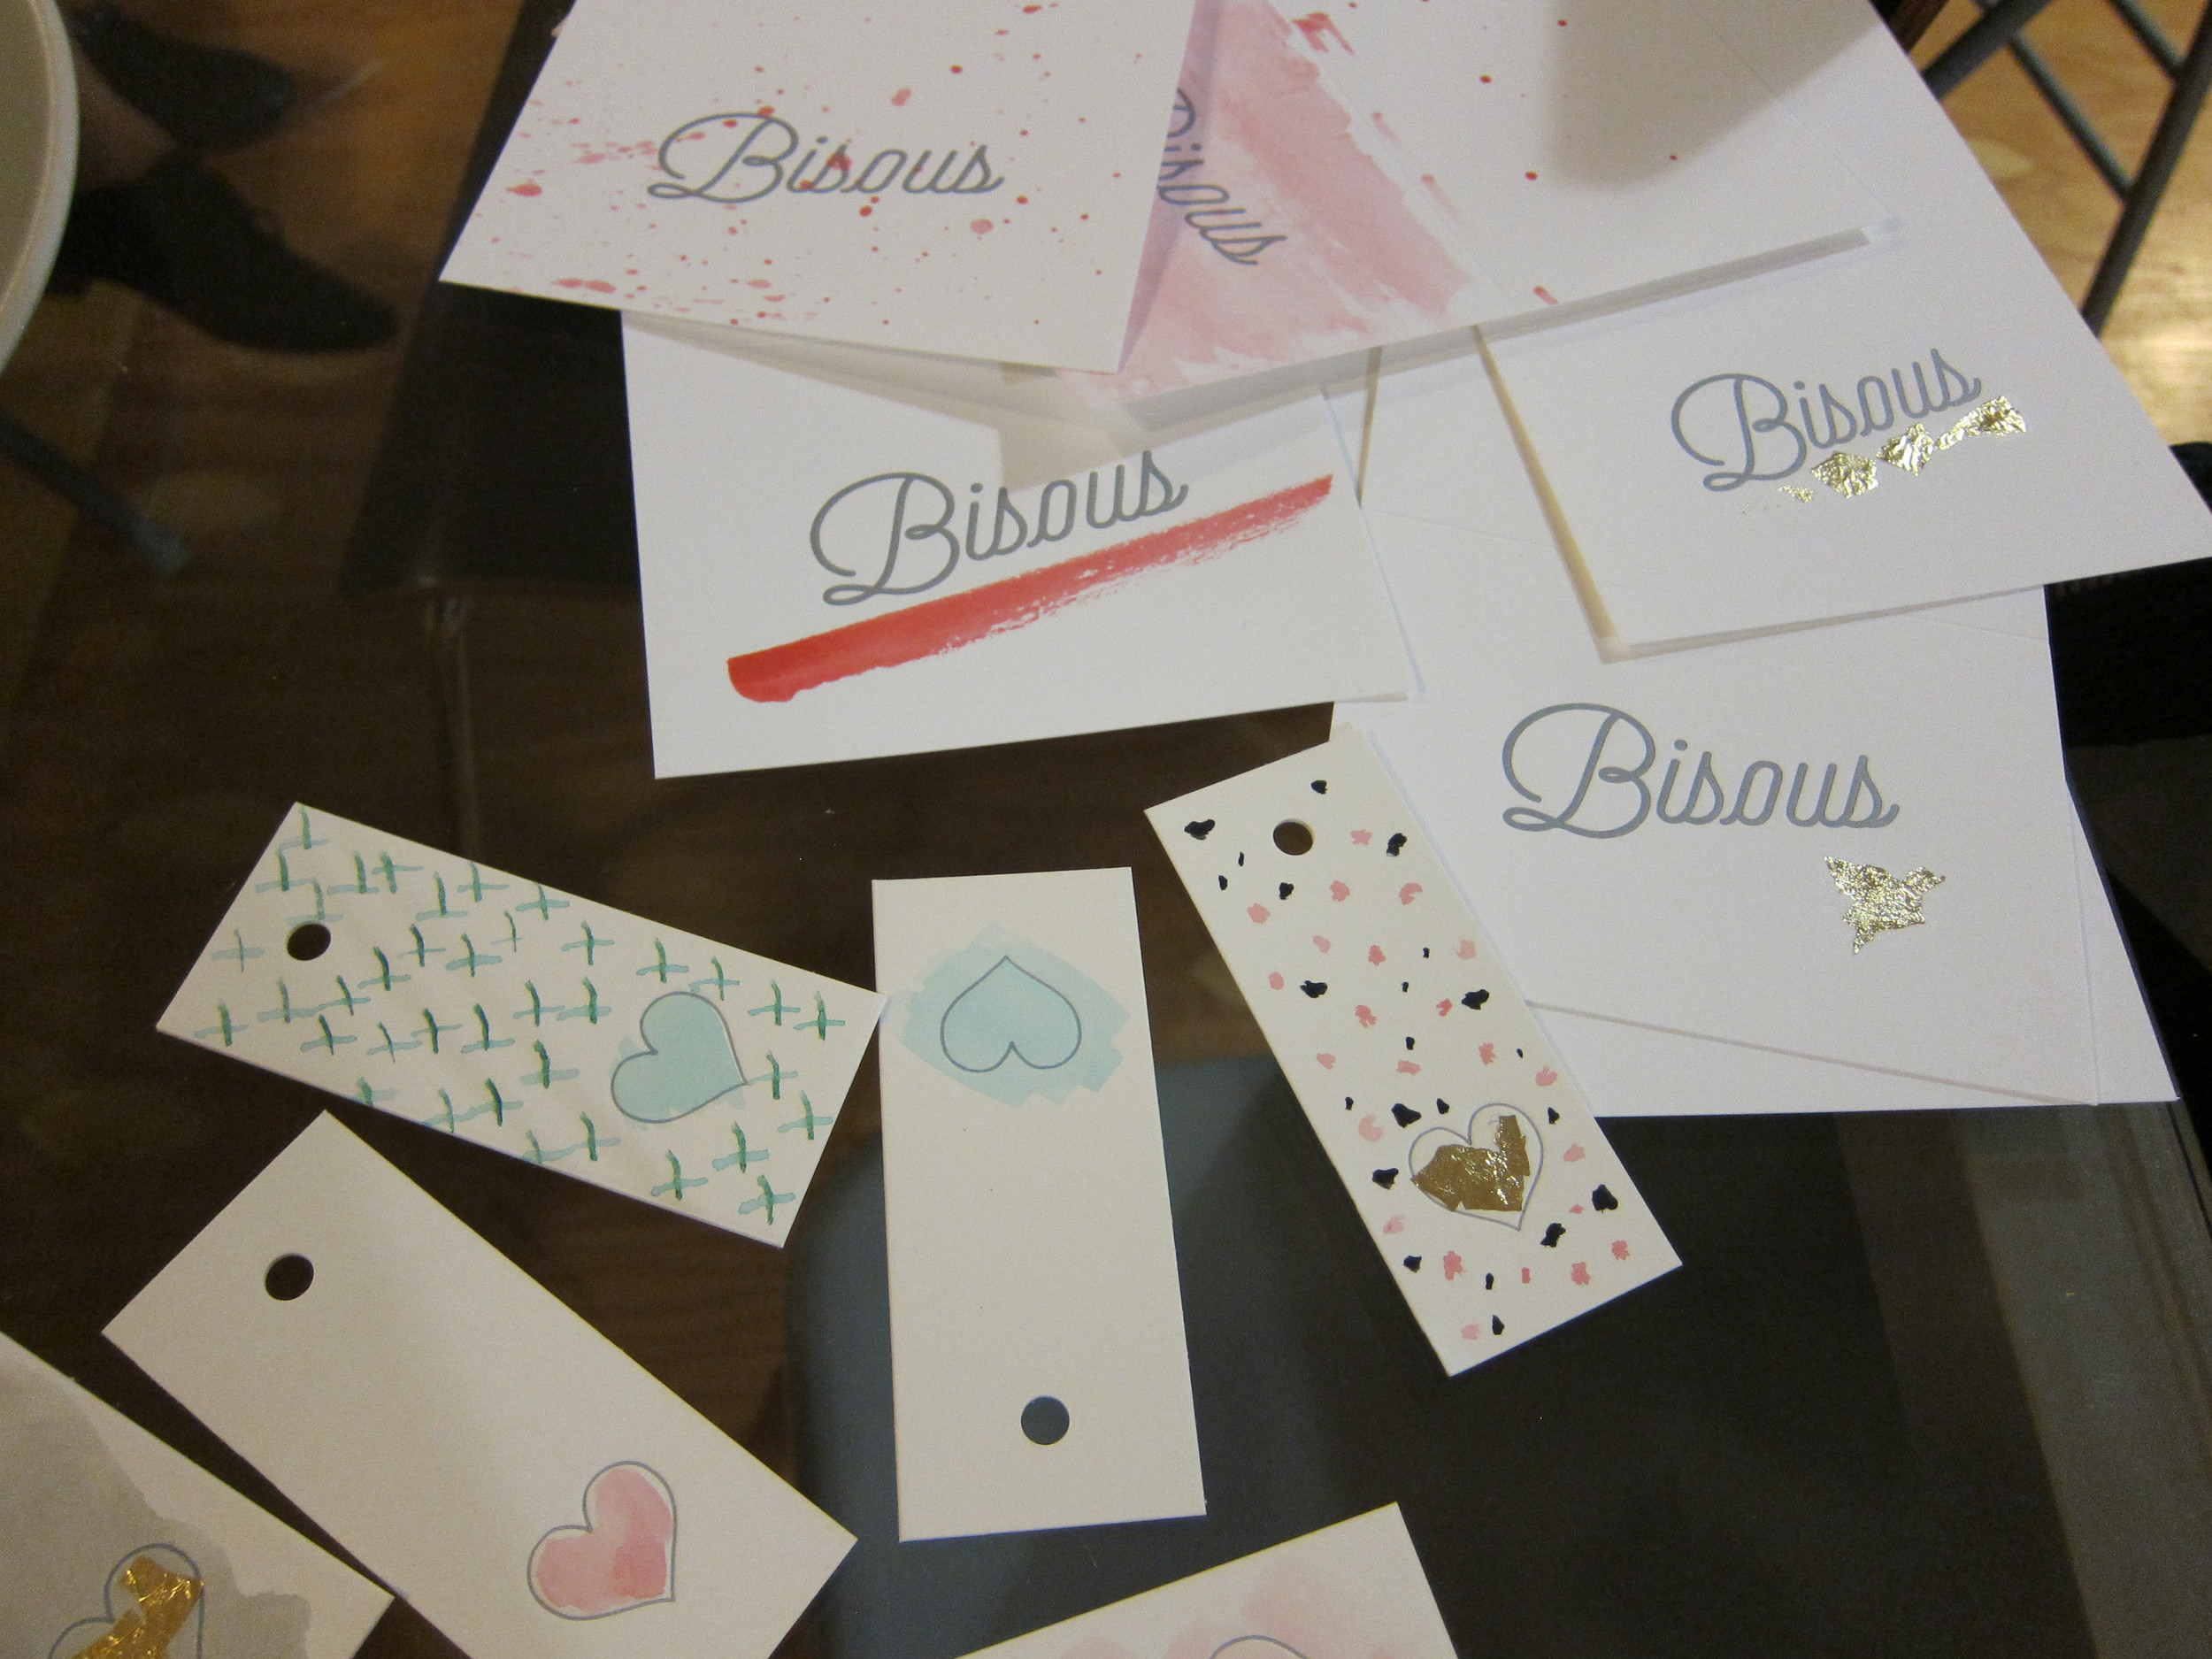 A few of our finished cards, embellished with watercolor paint and gold foil.